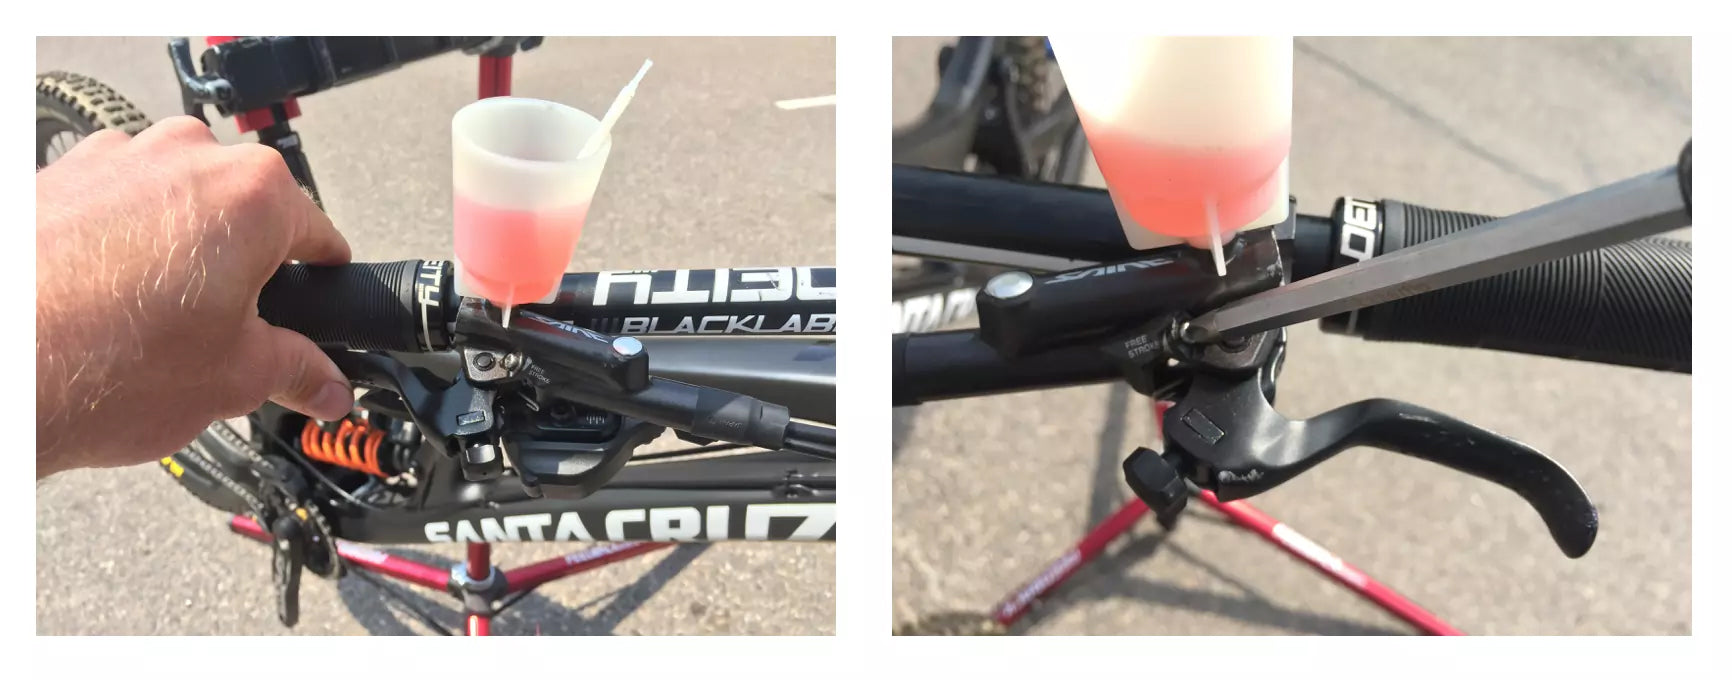 How To: 12 Simple Steps to Bleeding Shimano Brakes